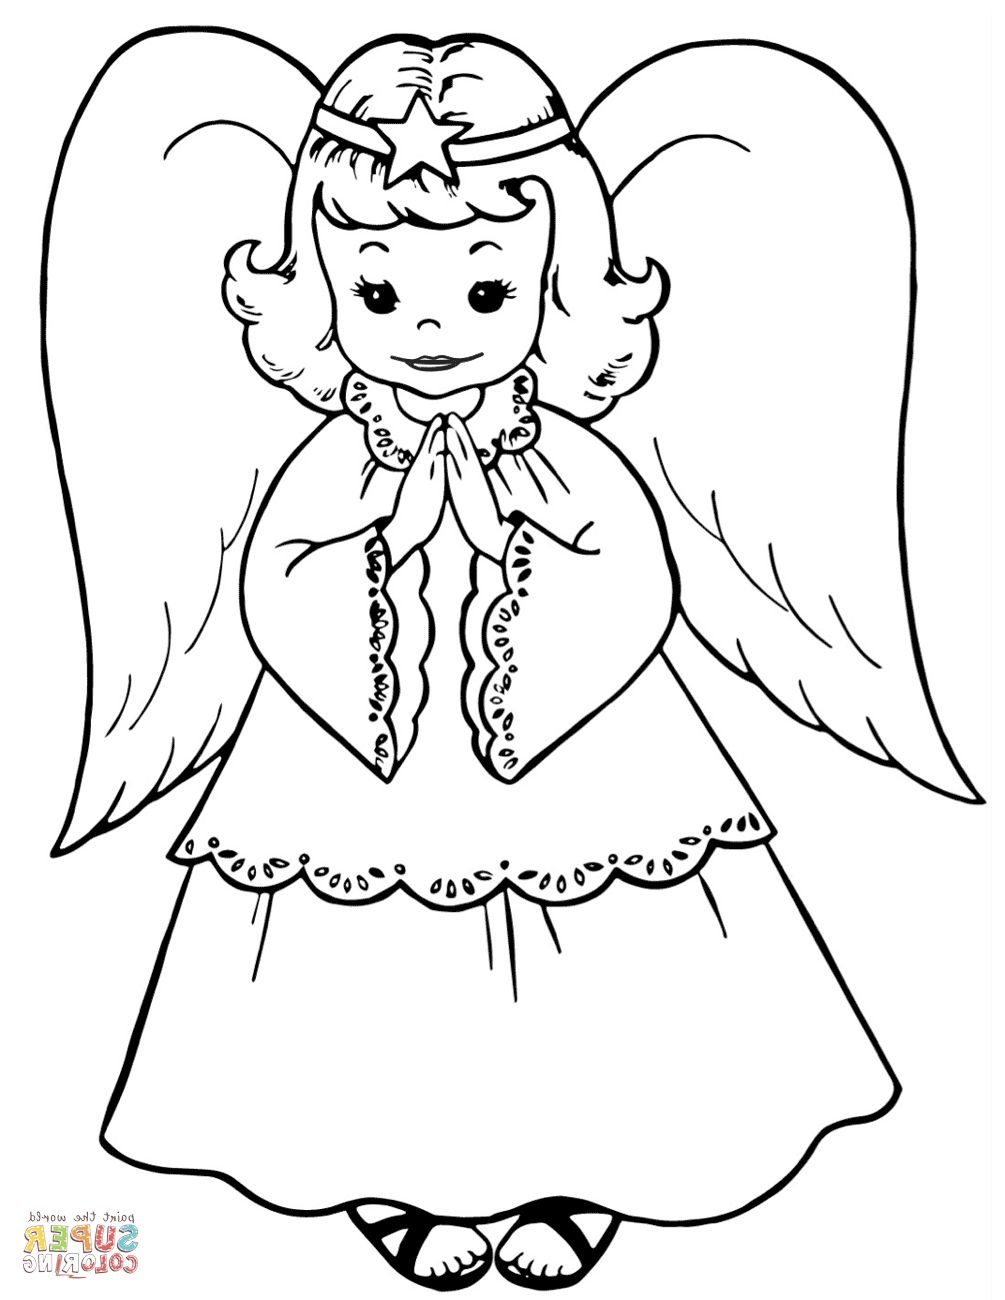 Collection Of Angel Coloring Pages Free Coloring Sheets Angel Coloring Pages Angel Coloring Page Abstract Coloring Pages